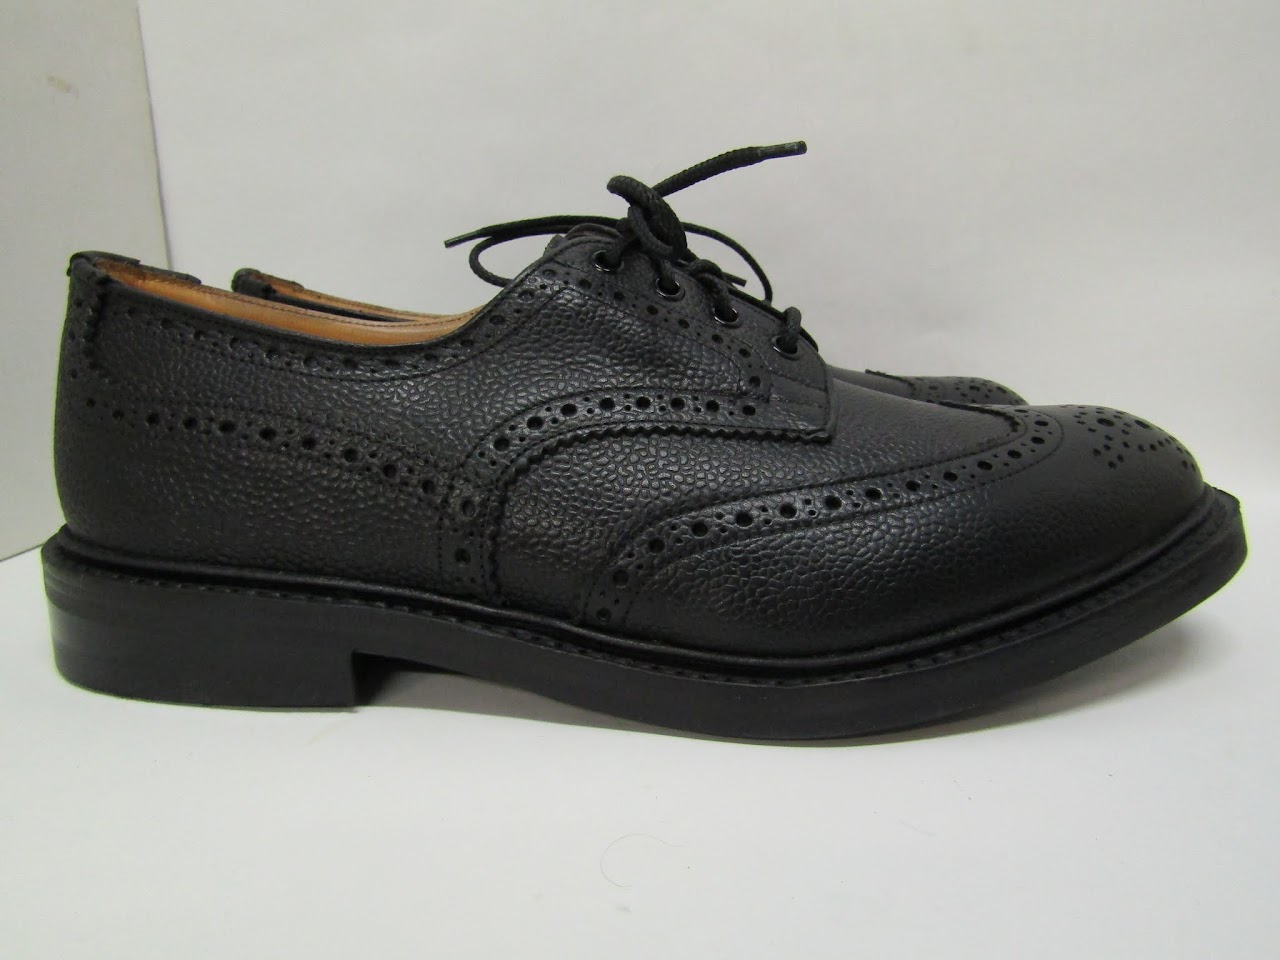 Trickers Brogues